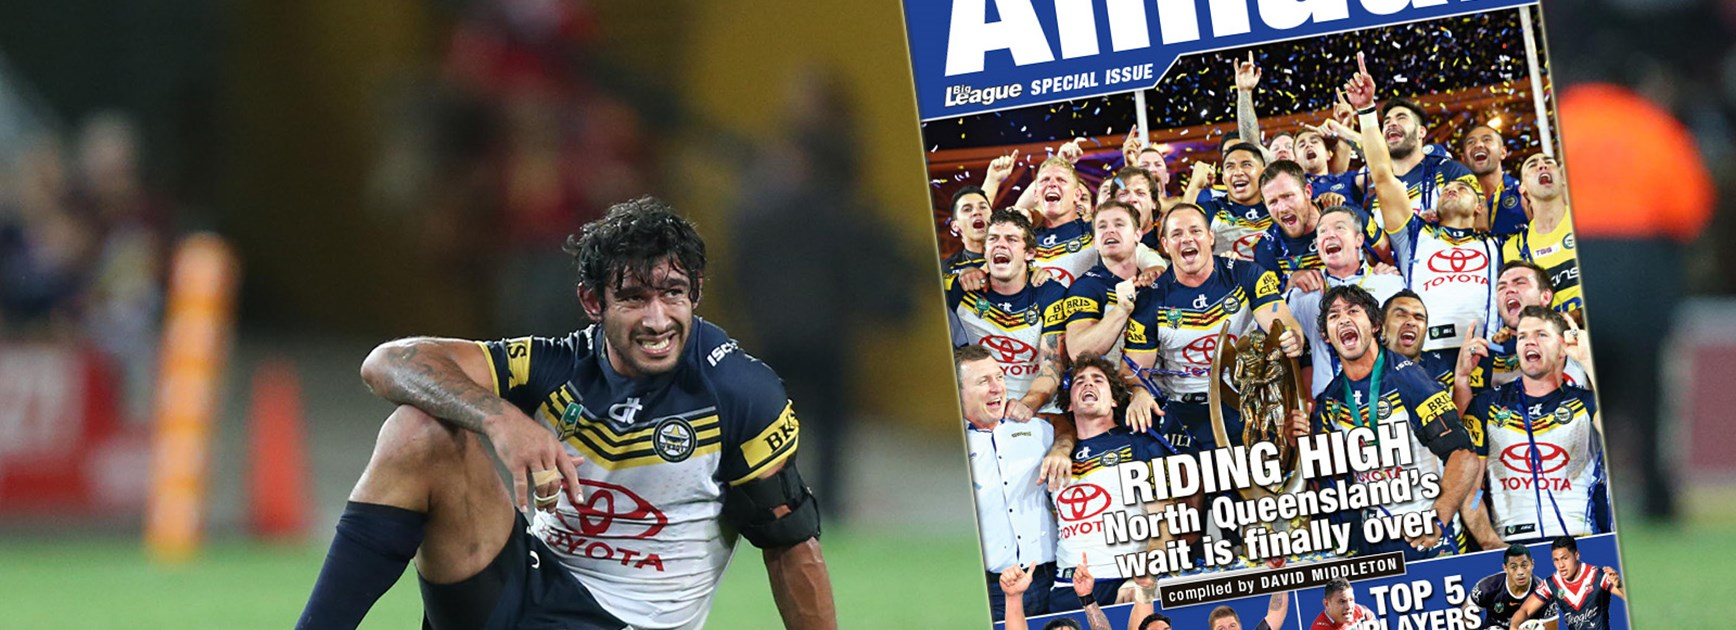 The 2015 Official Rugby League Annual is on sale from Thursday, December 10.